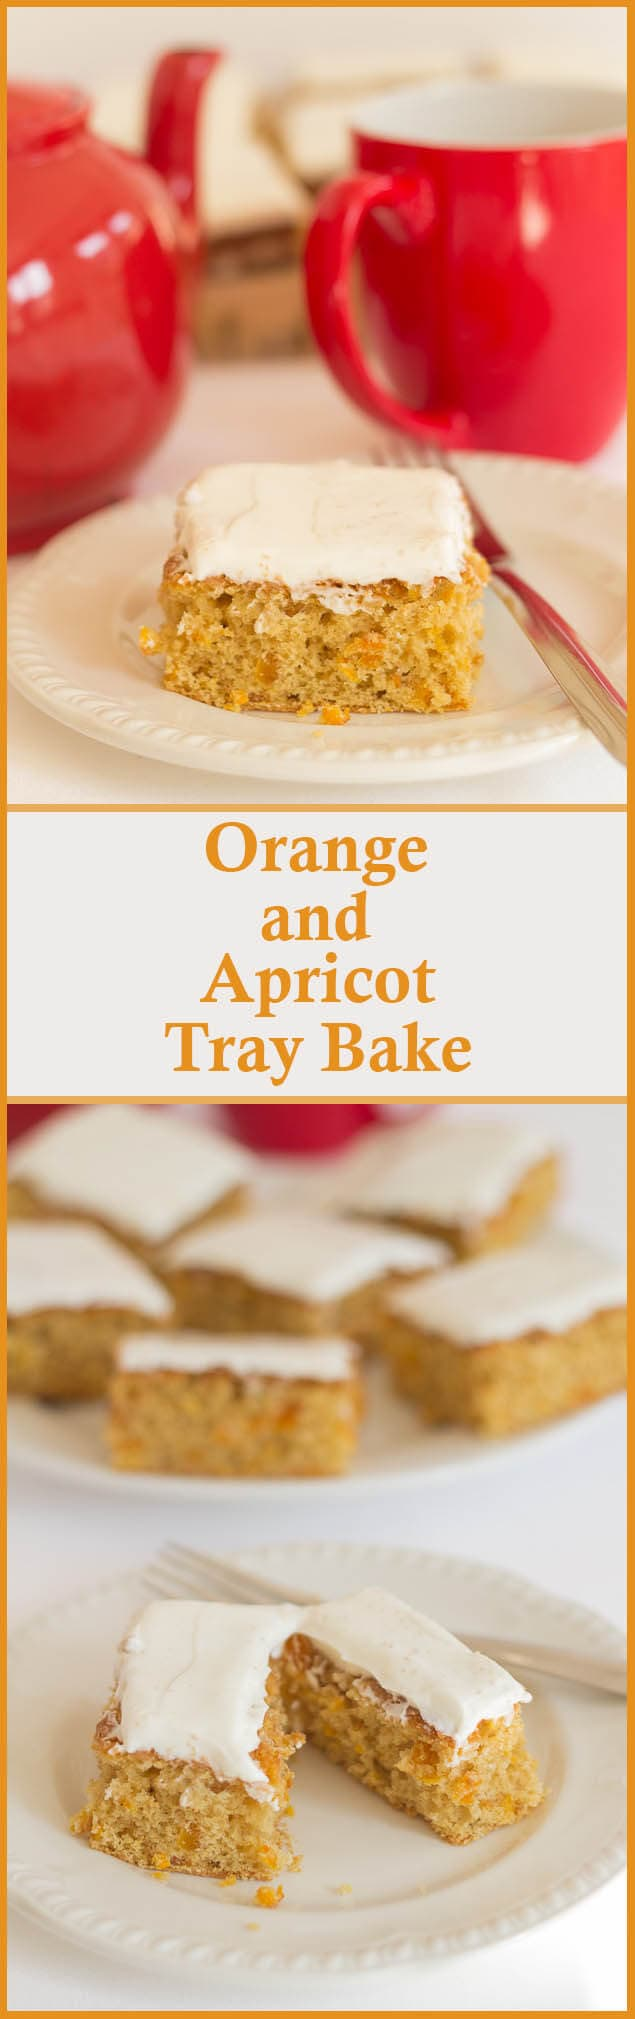 A healthier bake for your morning or afternoon cuppa! This low fat orange and apricot tray bake, will satisfy your craving at only 246 calories per slice!